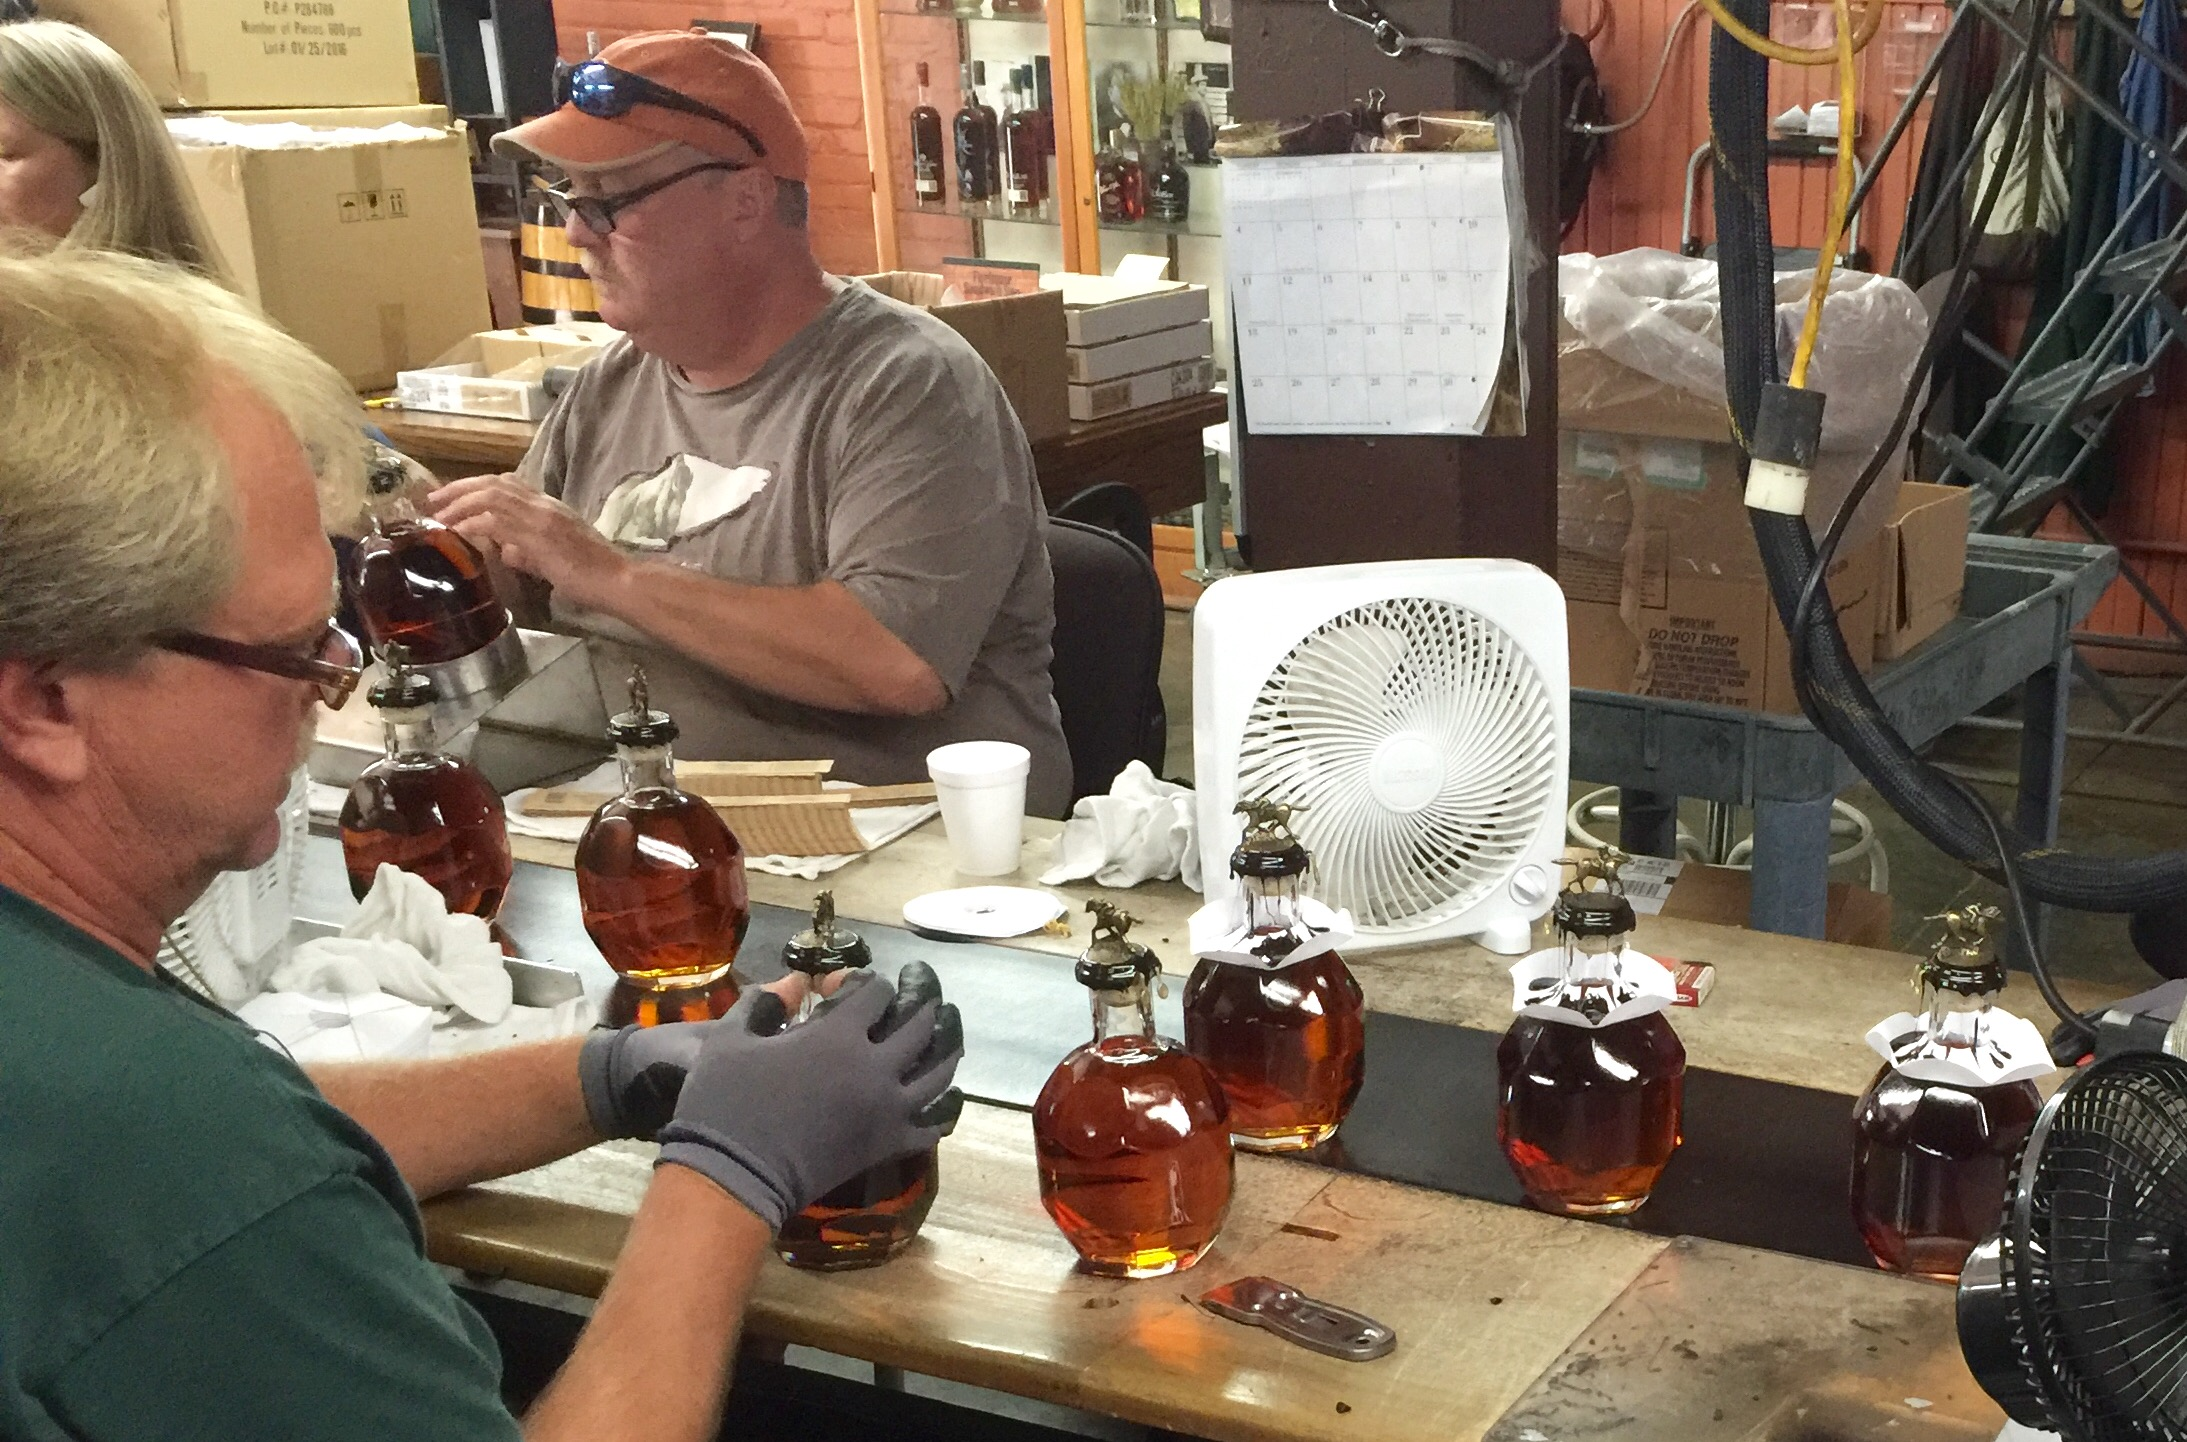 Blanton's hand bottling line at Buffalo Trace.  Those white paper collars are put on the bottles temporarily to catch any wax drips after the corks have been sealed with hot wax.